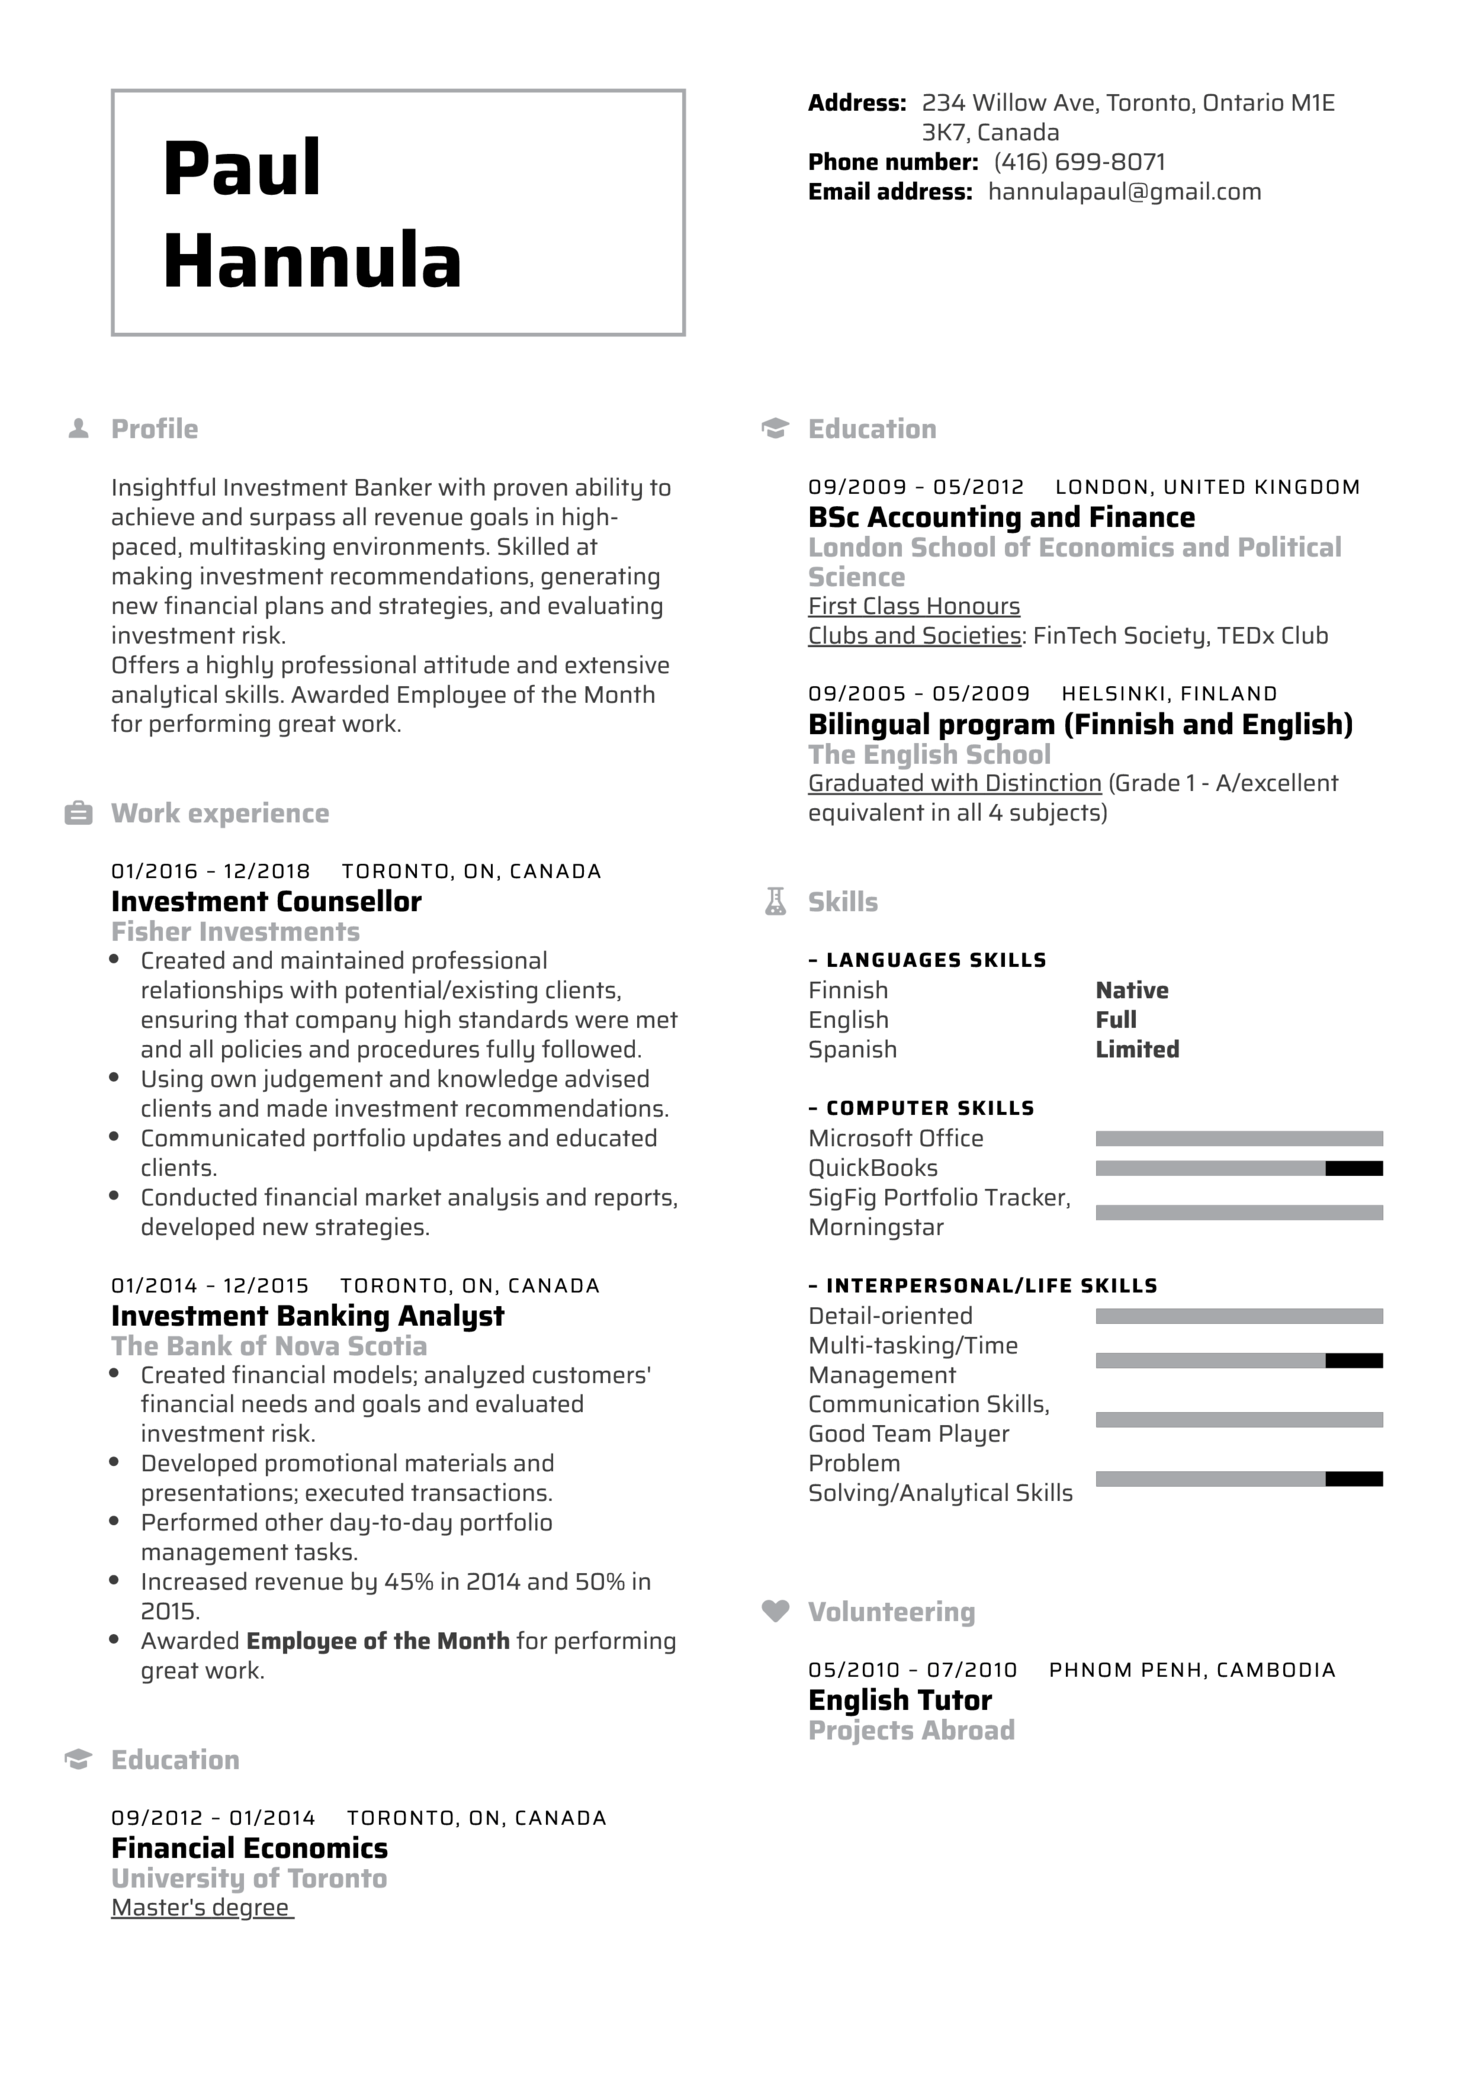 Investment Banker Resume Template (parte 1)